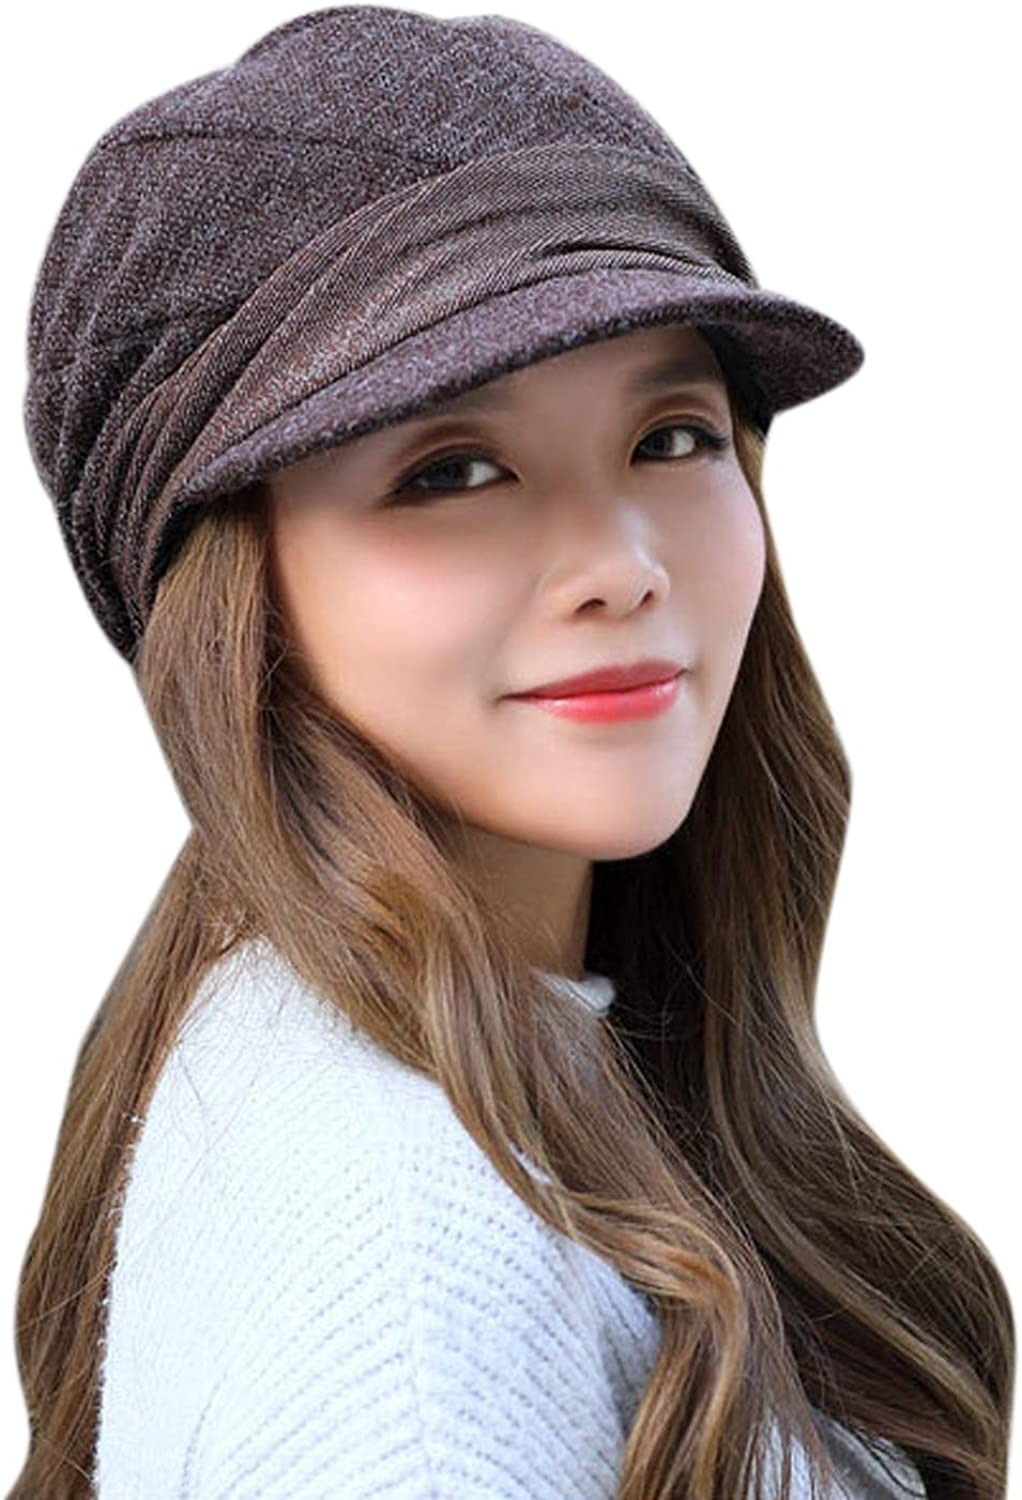 Melotizhi Winter Hats for Women, Fashion Knitted Woolen Beret Caps, Casual Warm Outdoor Hats